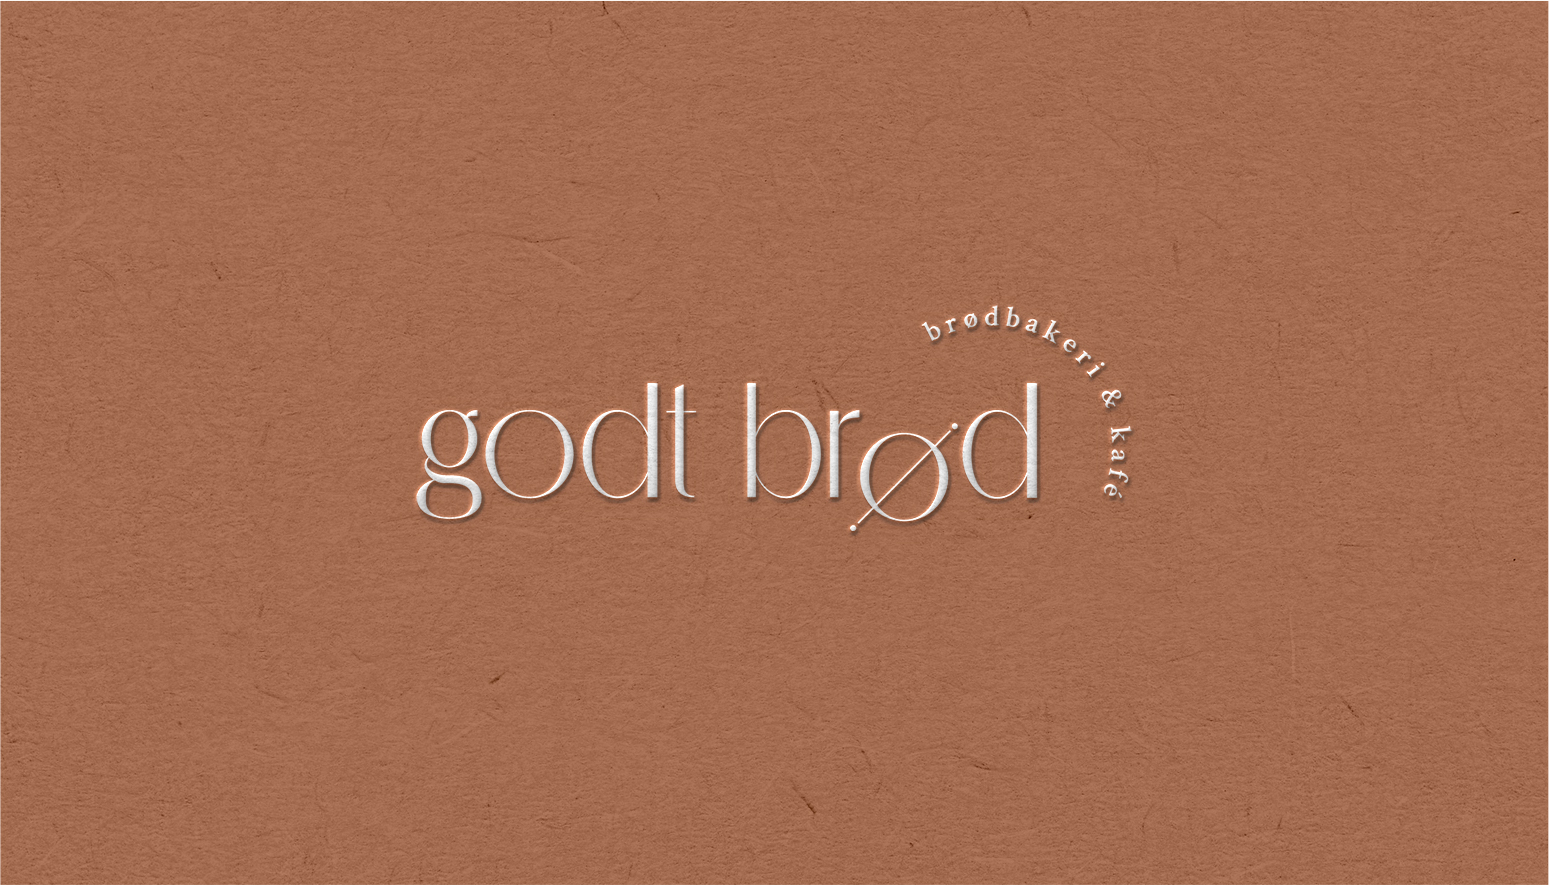 Close up of a burnt orange business card with the Godt Brod logo in the middle